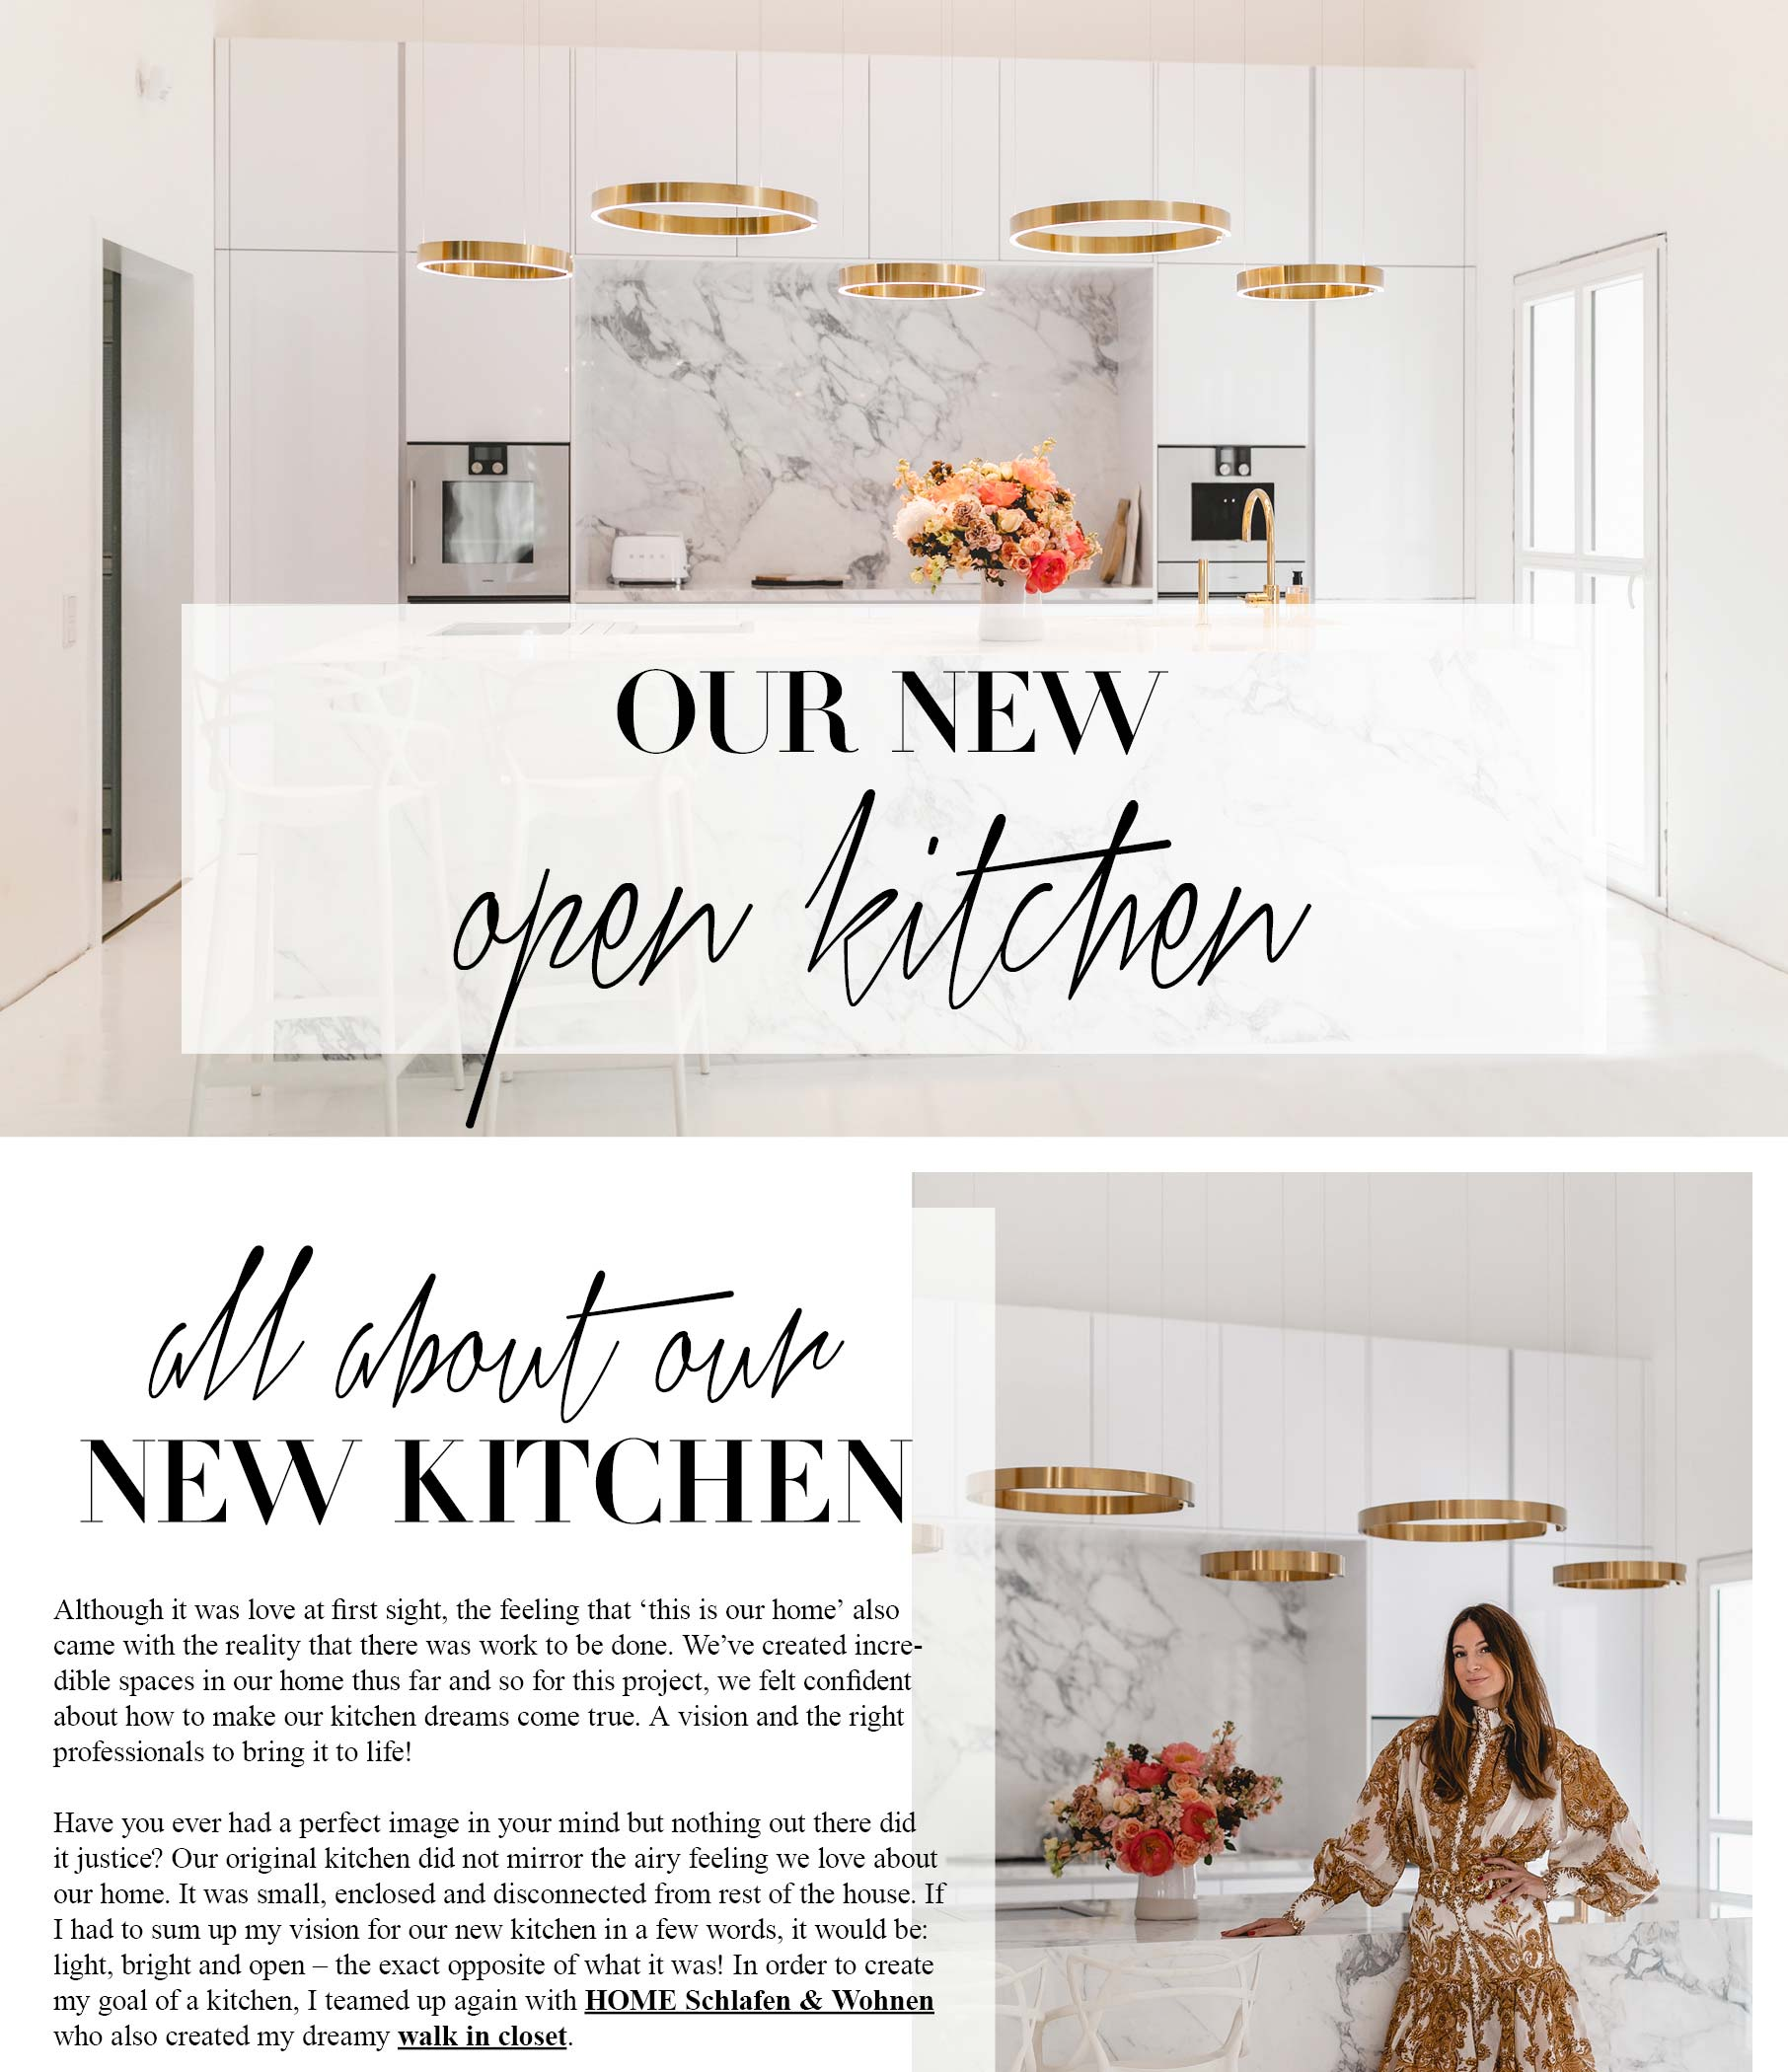 Our New Open Kitchen Lena Terlutter